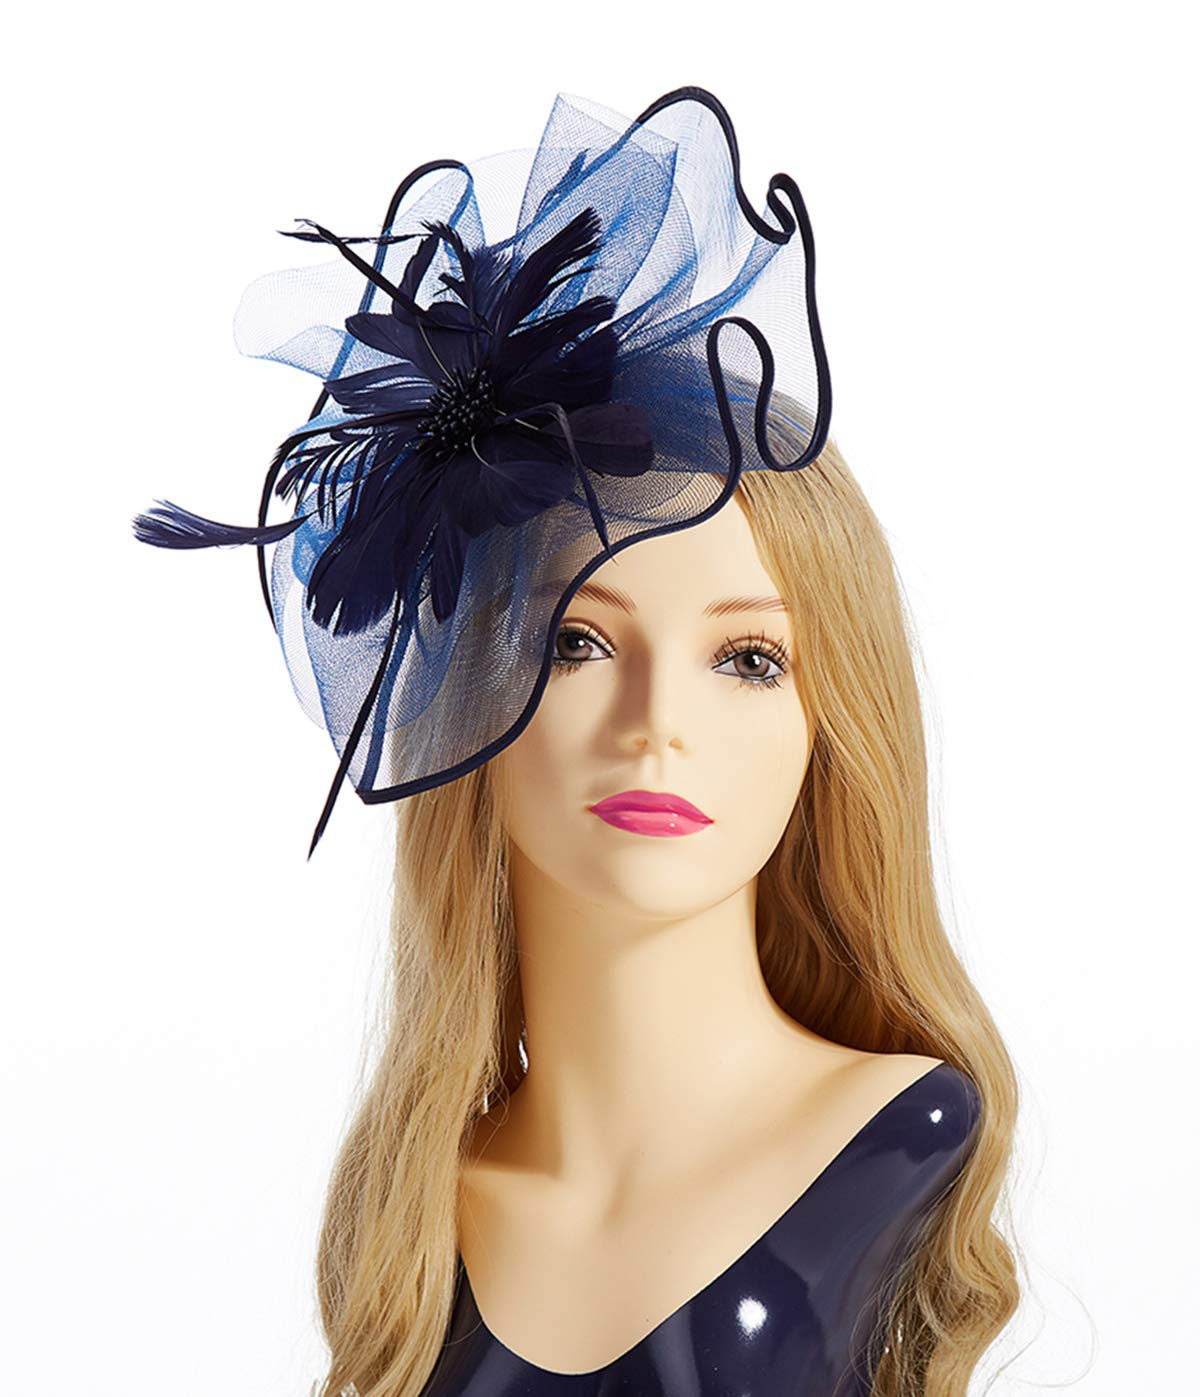 Fascinator Hat,Aiskki Fascinator Headband Feather Mesh Net Hat With Hairband and Gift Gloves,Tea Party Headwear,Flower Derby Hat with Clip,Kentucky Derby Hats for Women (Dark Blue)